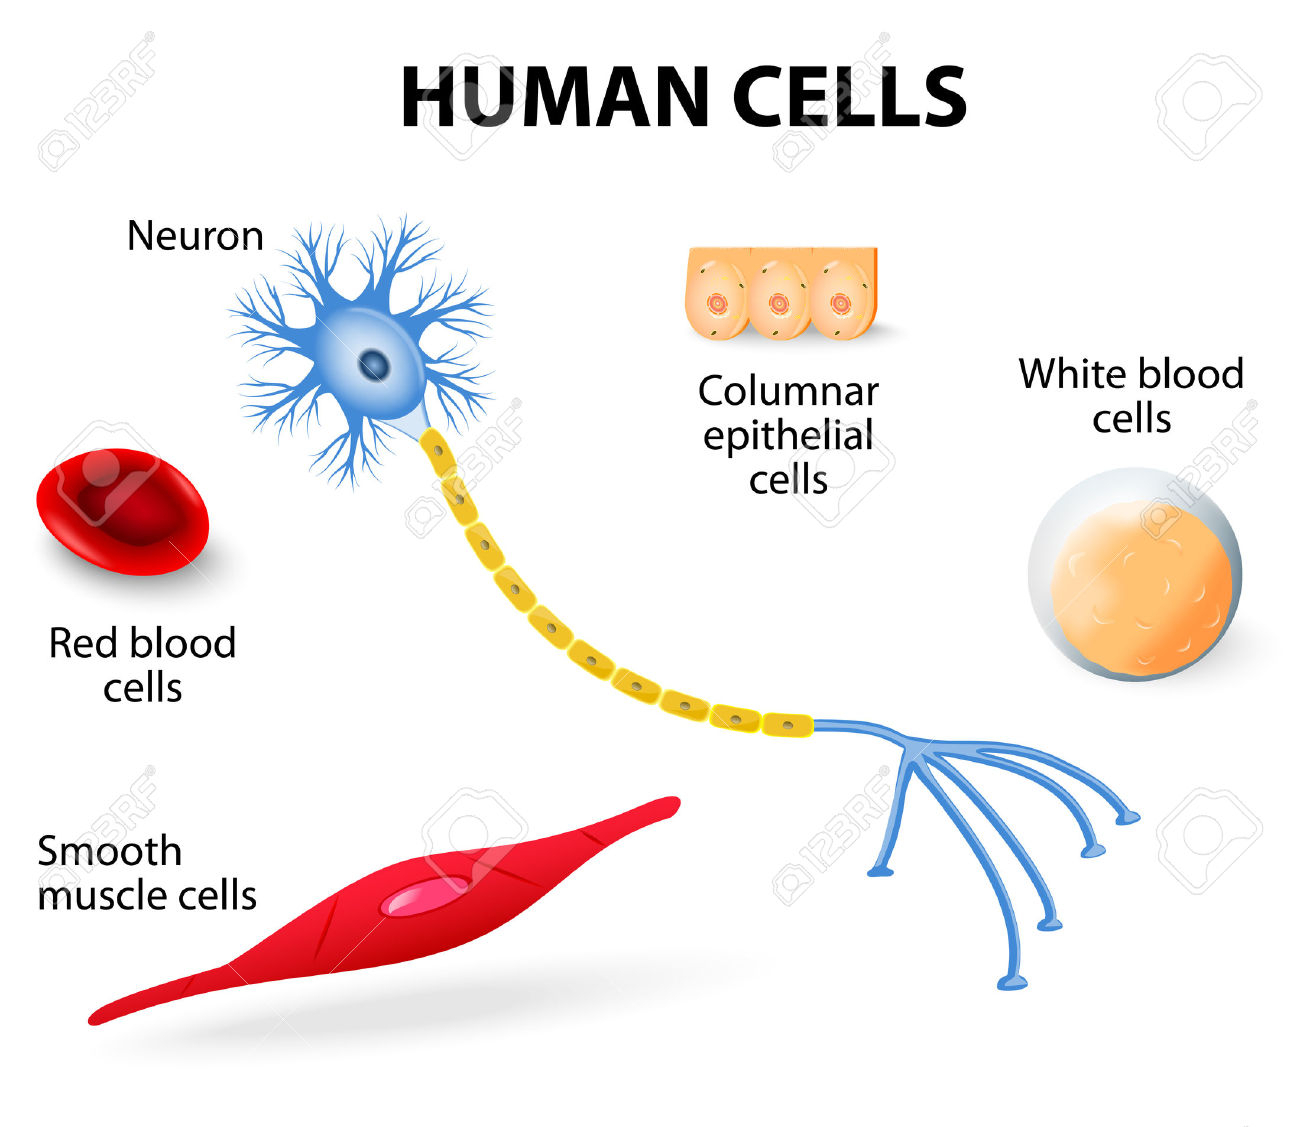 Cell clipart body cell. Blood cells in human